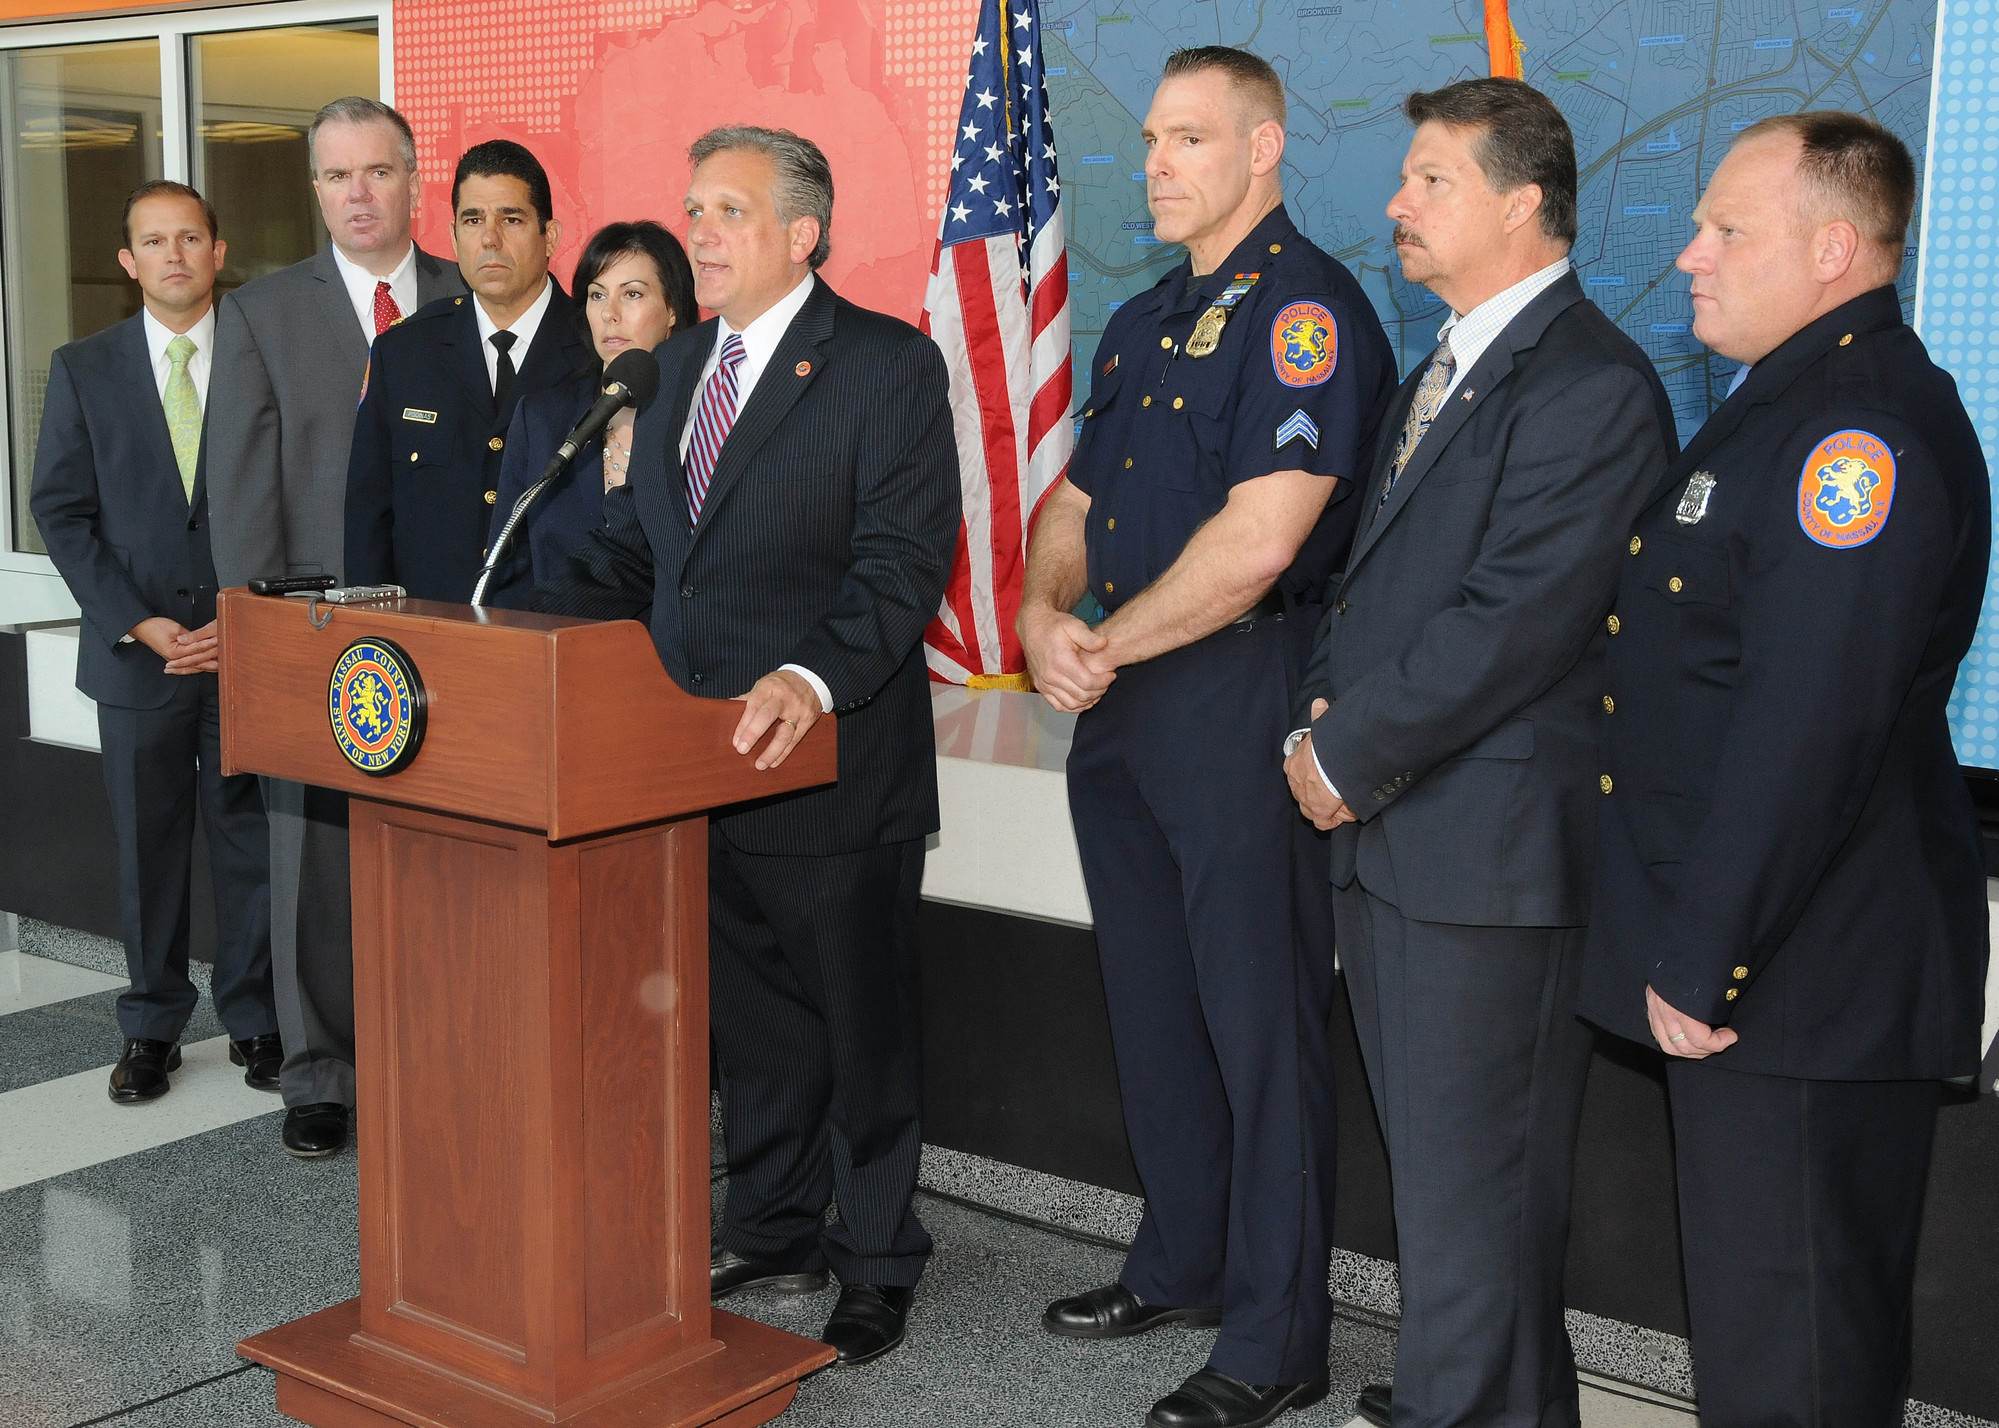 Nassau County Executive Ed Mangano announced on June 27 that 61 contractors were arrested after a sting operation was held throughout Franklin Square and Valley Stream.